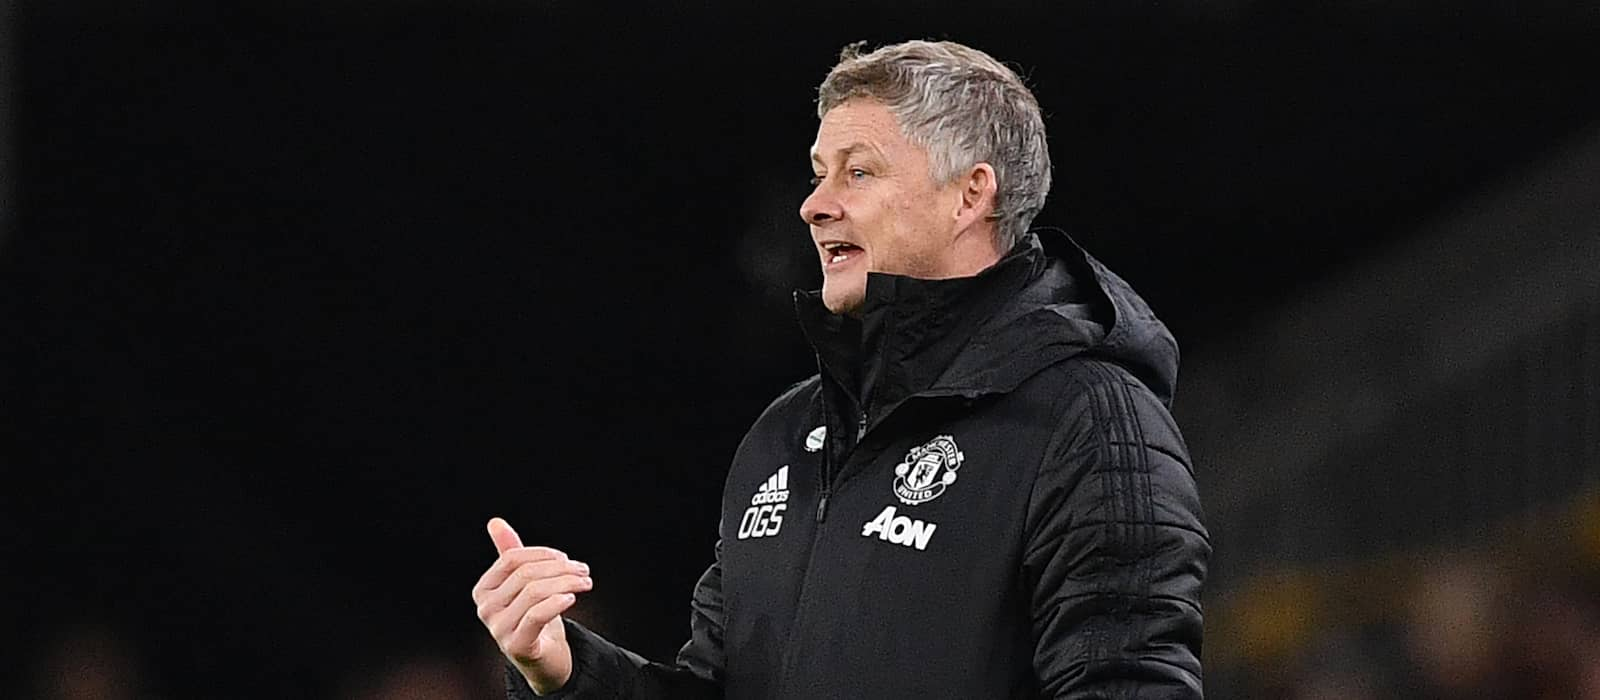 Manchester United fans call for Ole Gunnar Solskjaer sacking after Manchester City humiliation